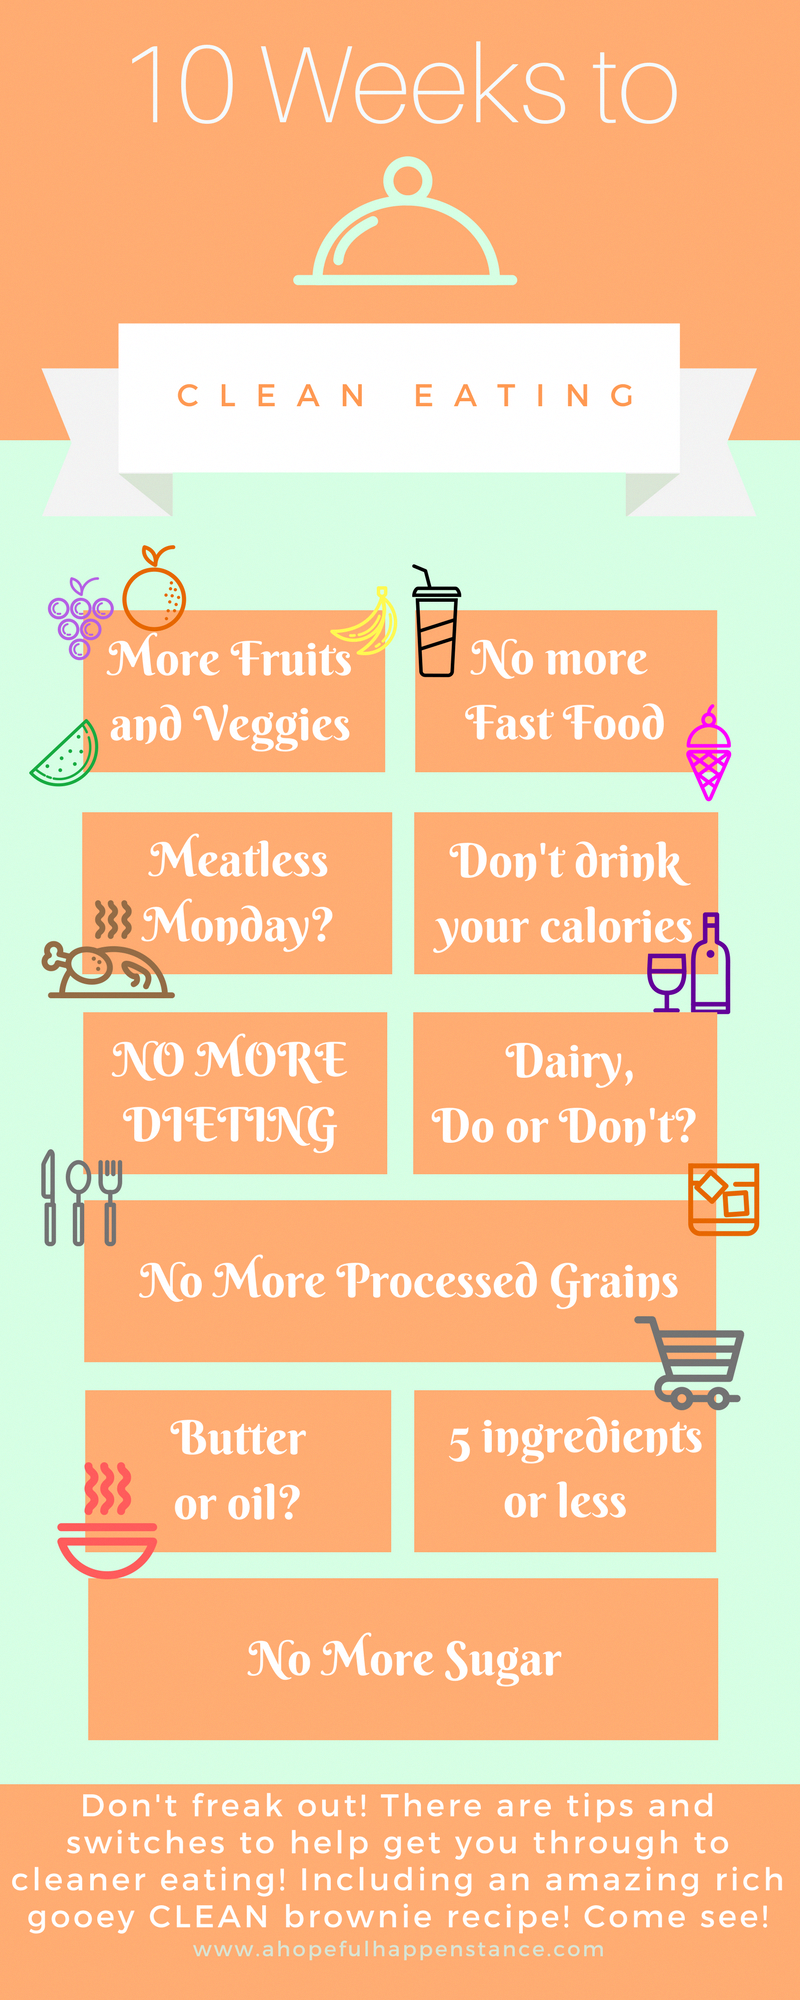 10 weeks to clean eating! New years resolutions / clean eating / diet / lifestyle / clean food / mom blog / christian / health / green work at home mom / how to manage staying home and living on one salary / infant / newborn / postpartum / new baby / mommy blog